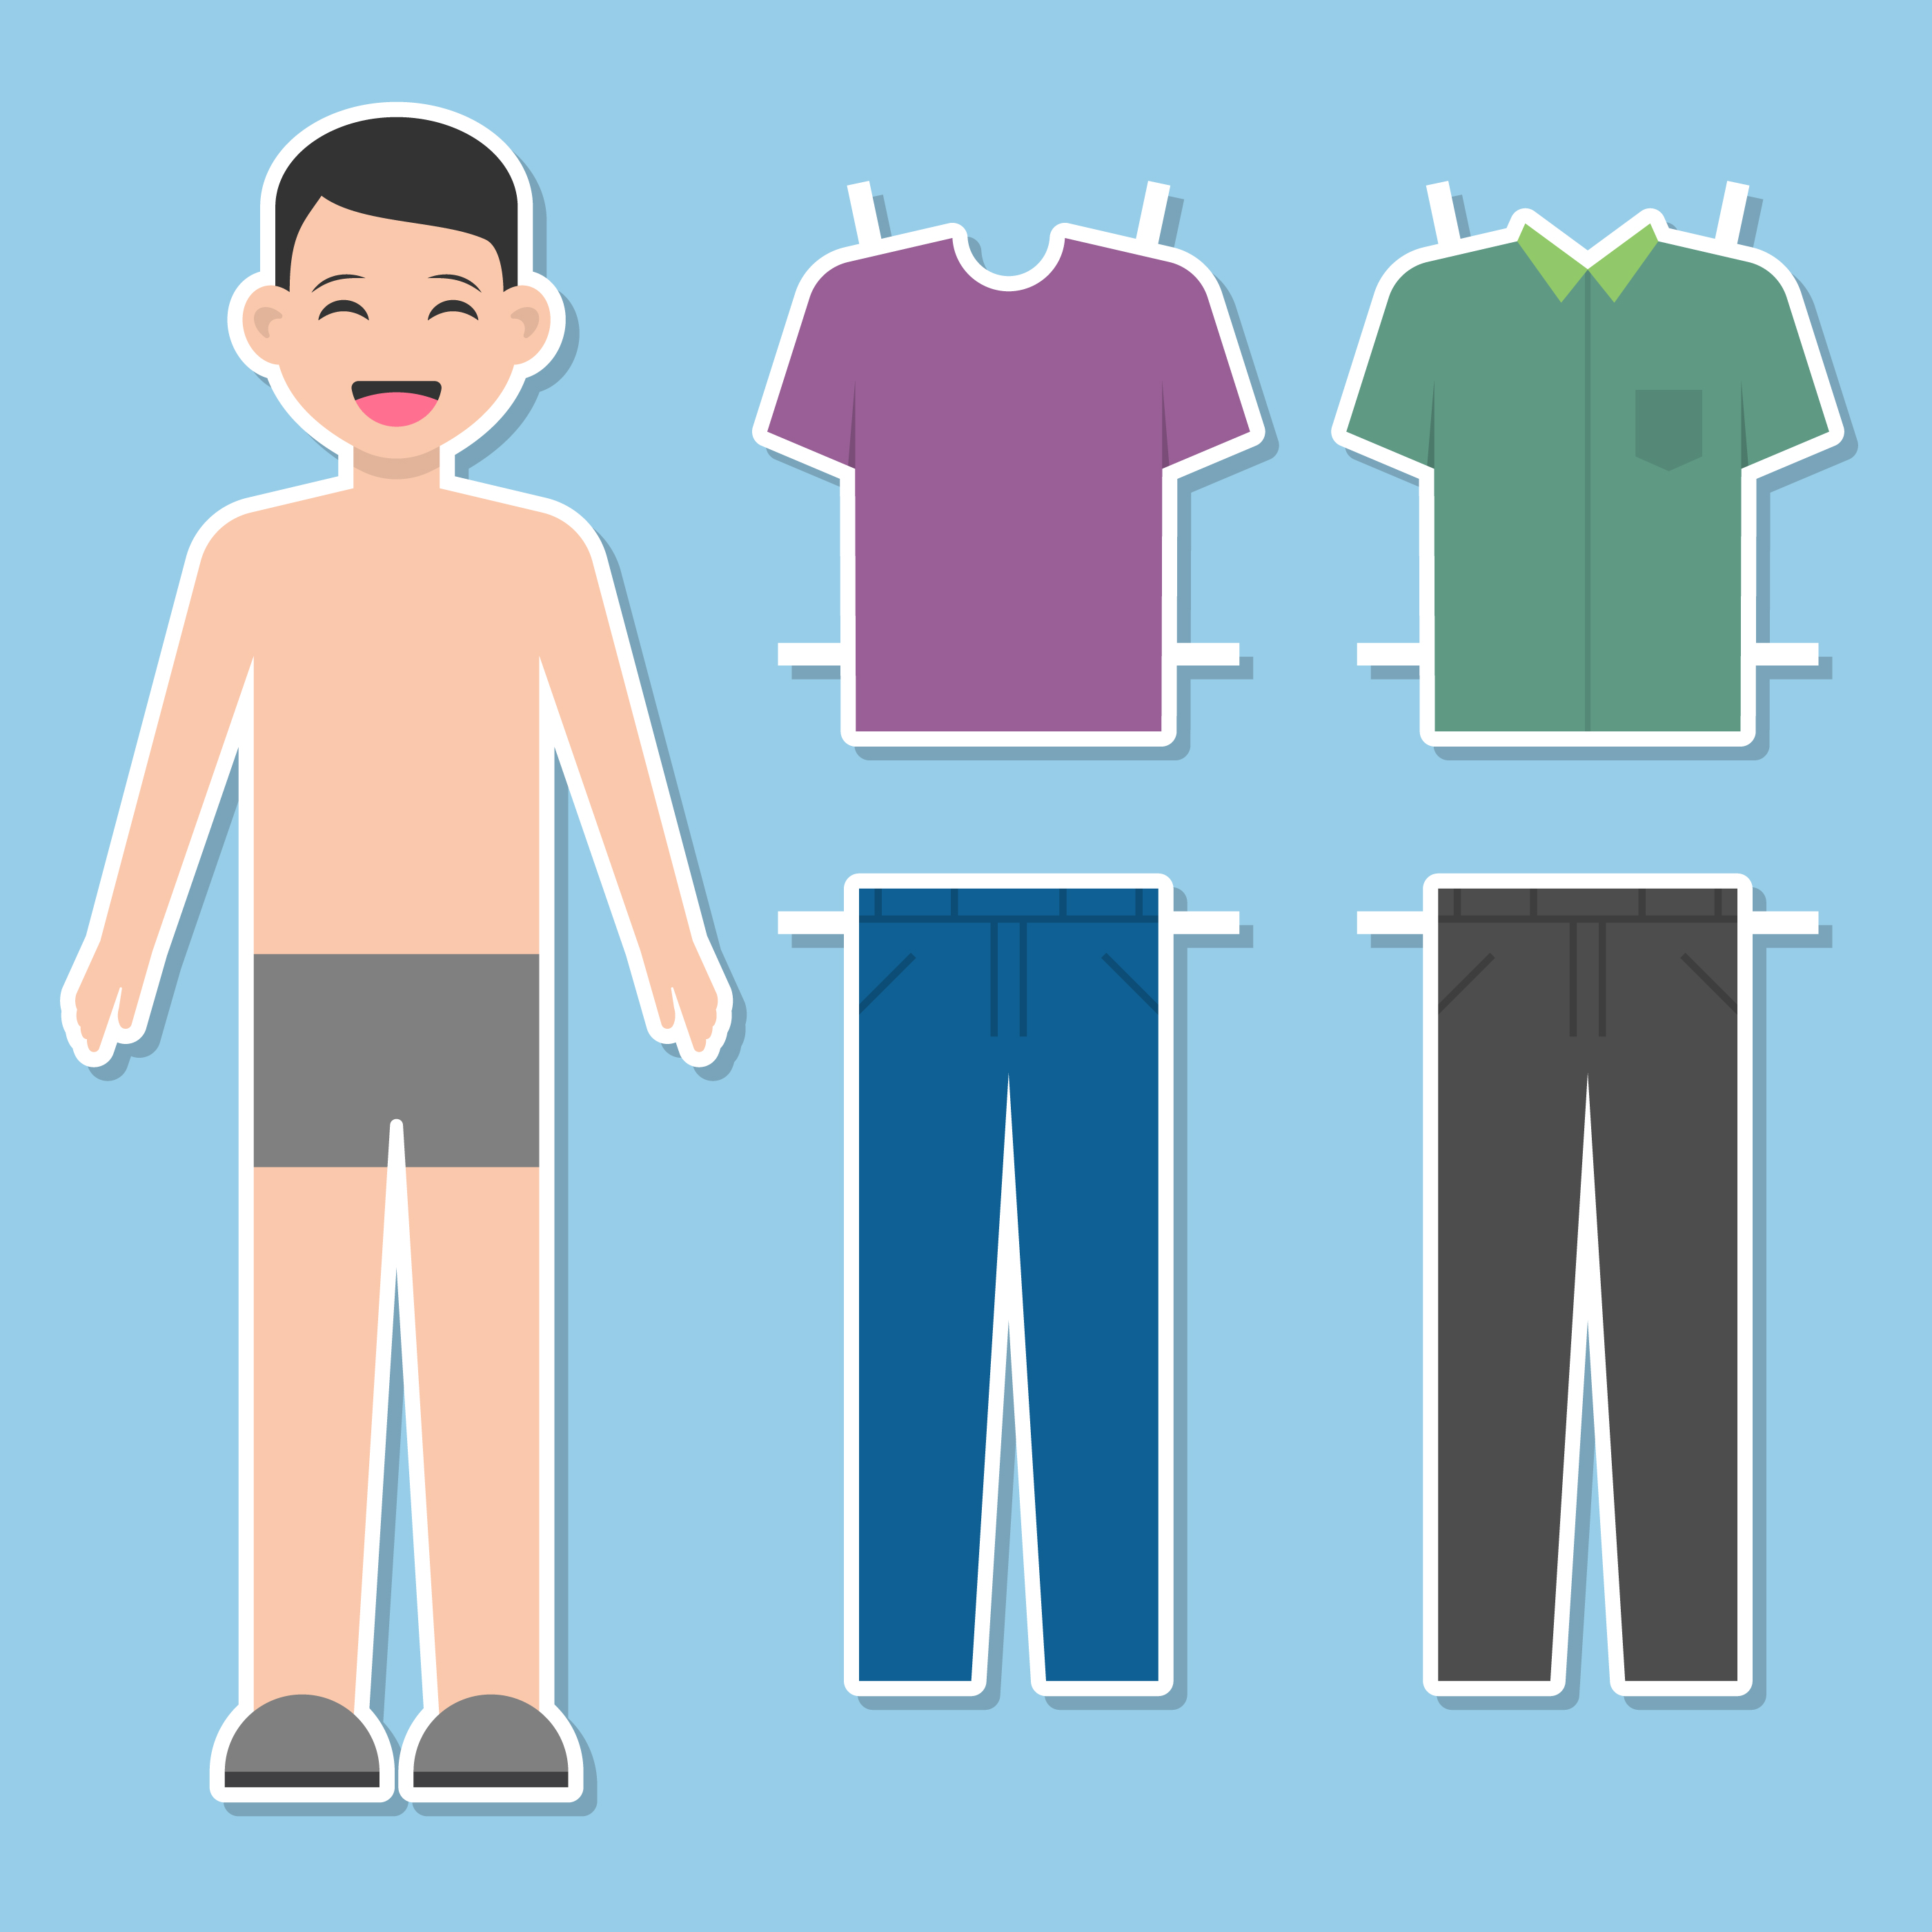 paper doll man template vector illustration download free vector